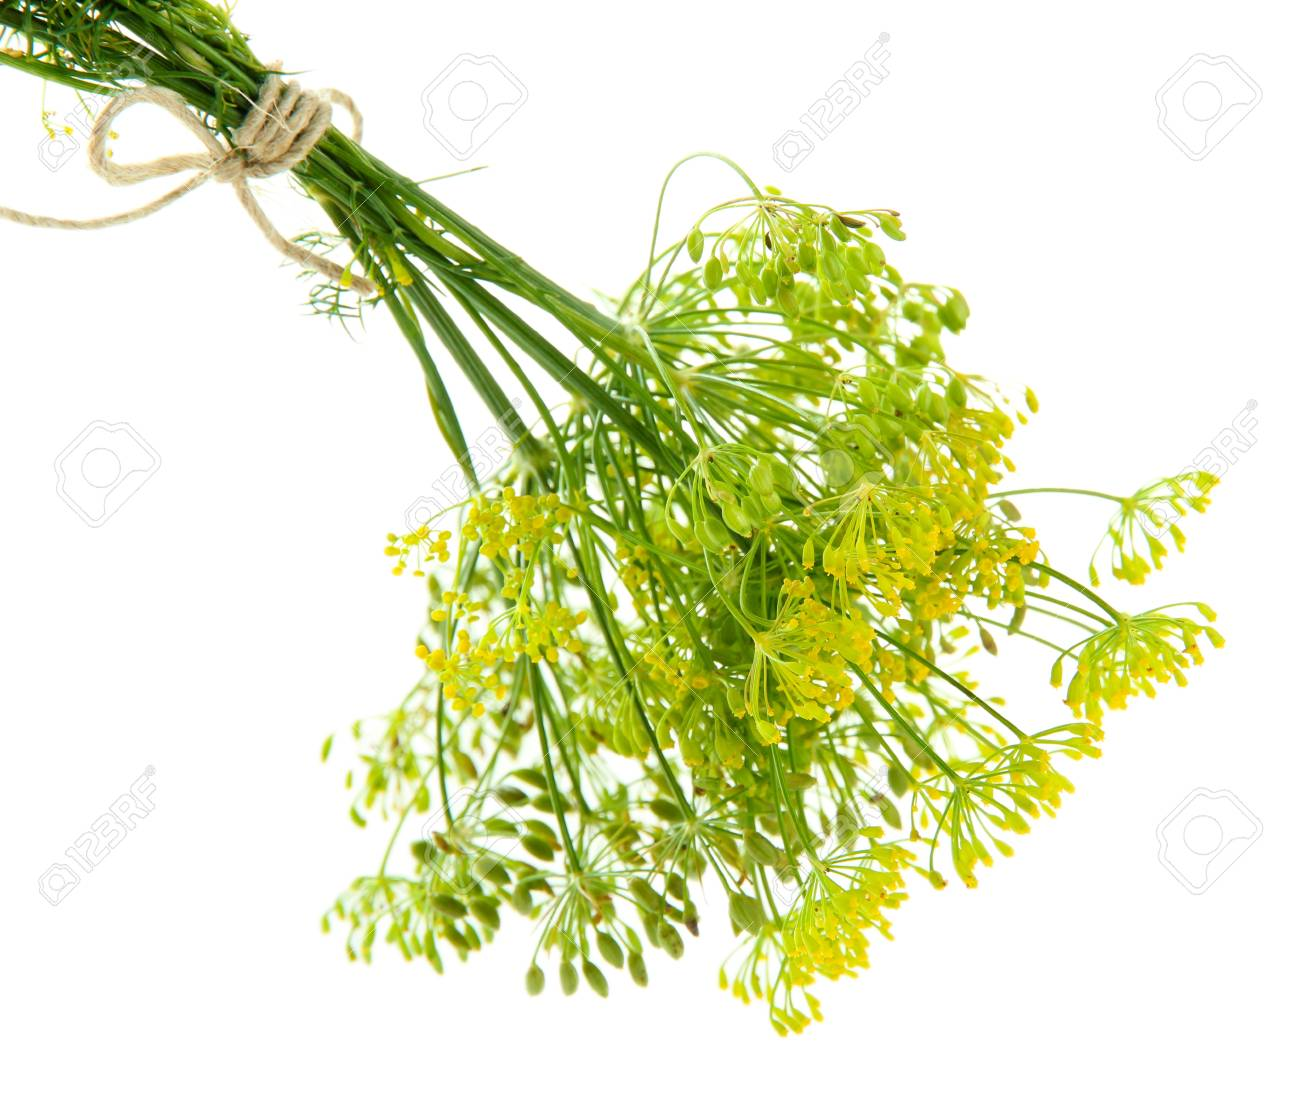 21364444-fresh-dill-flowers-isolated-on-white